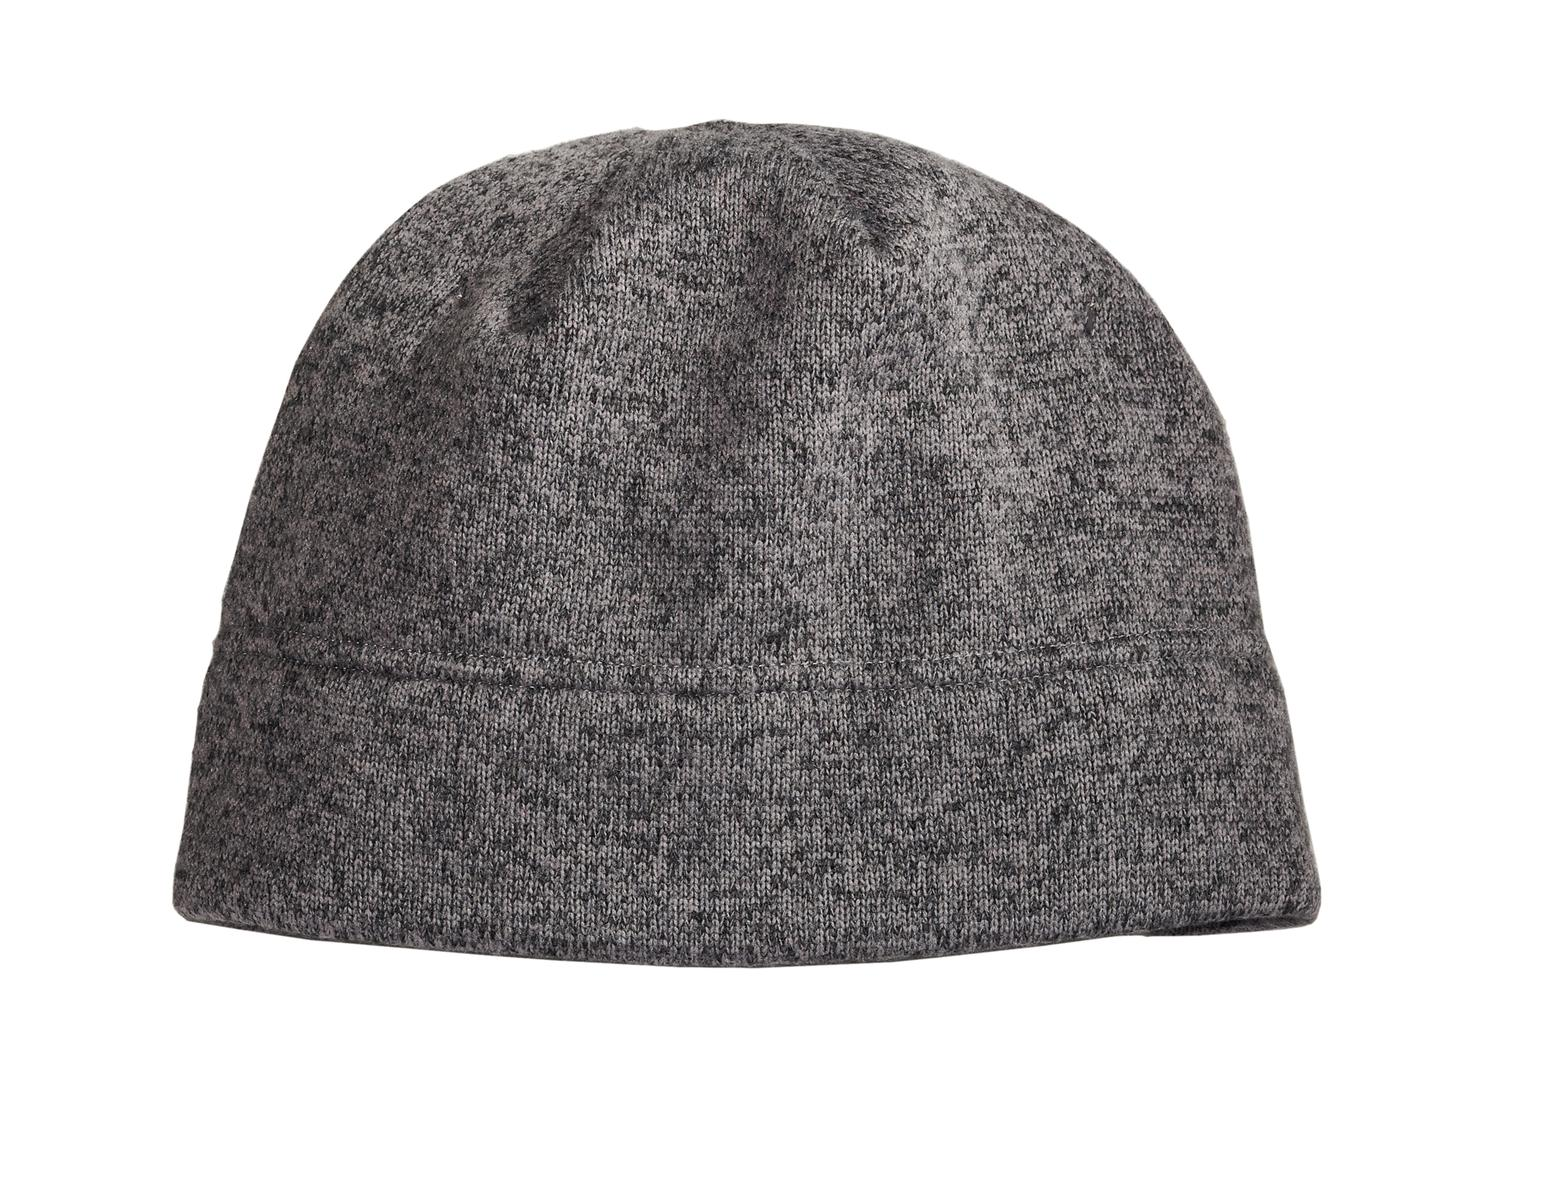 Port Authority Heathered Knit Fleece Beanie